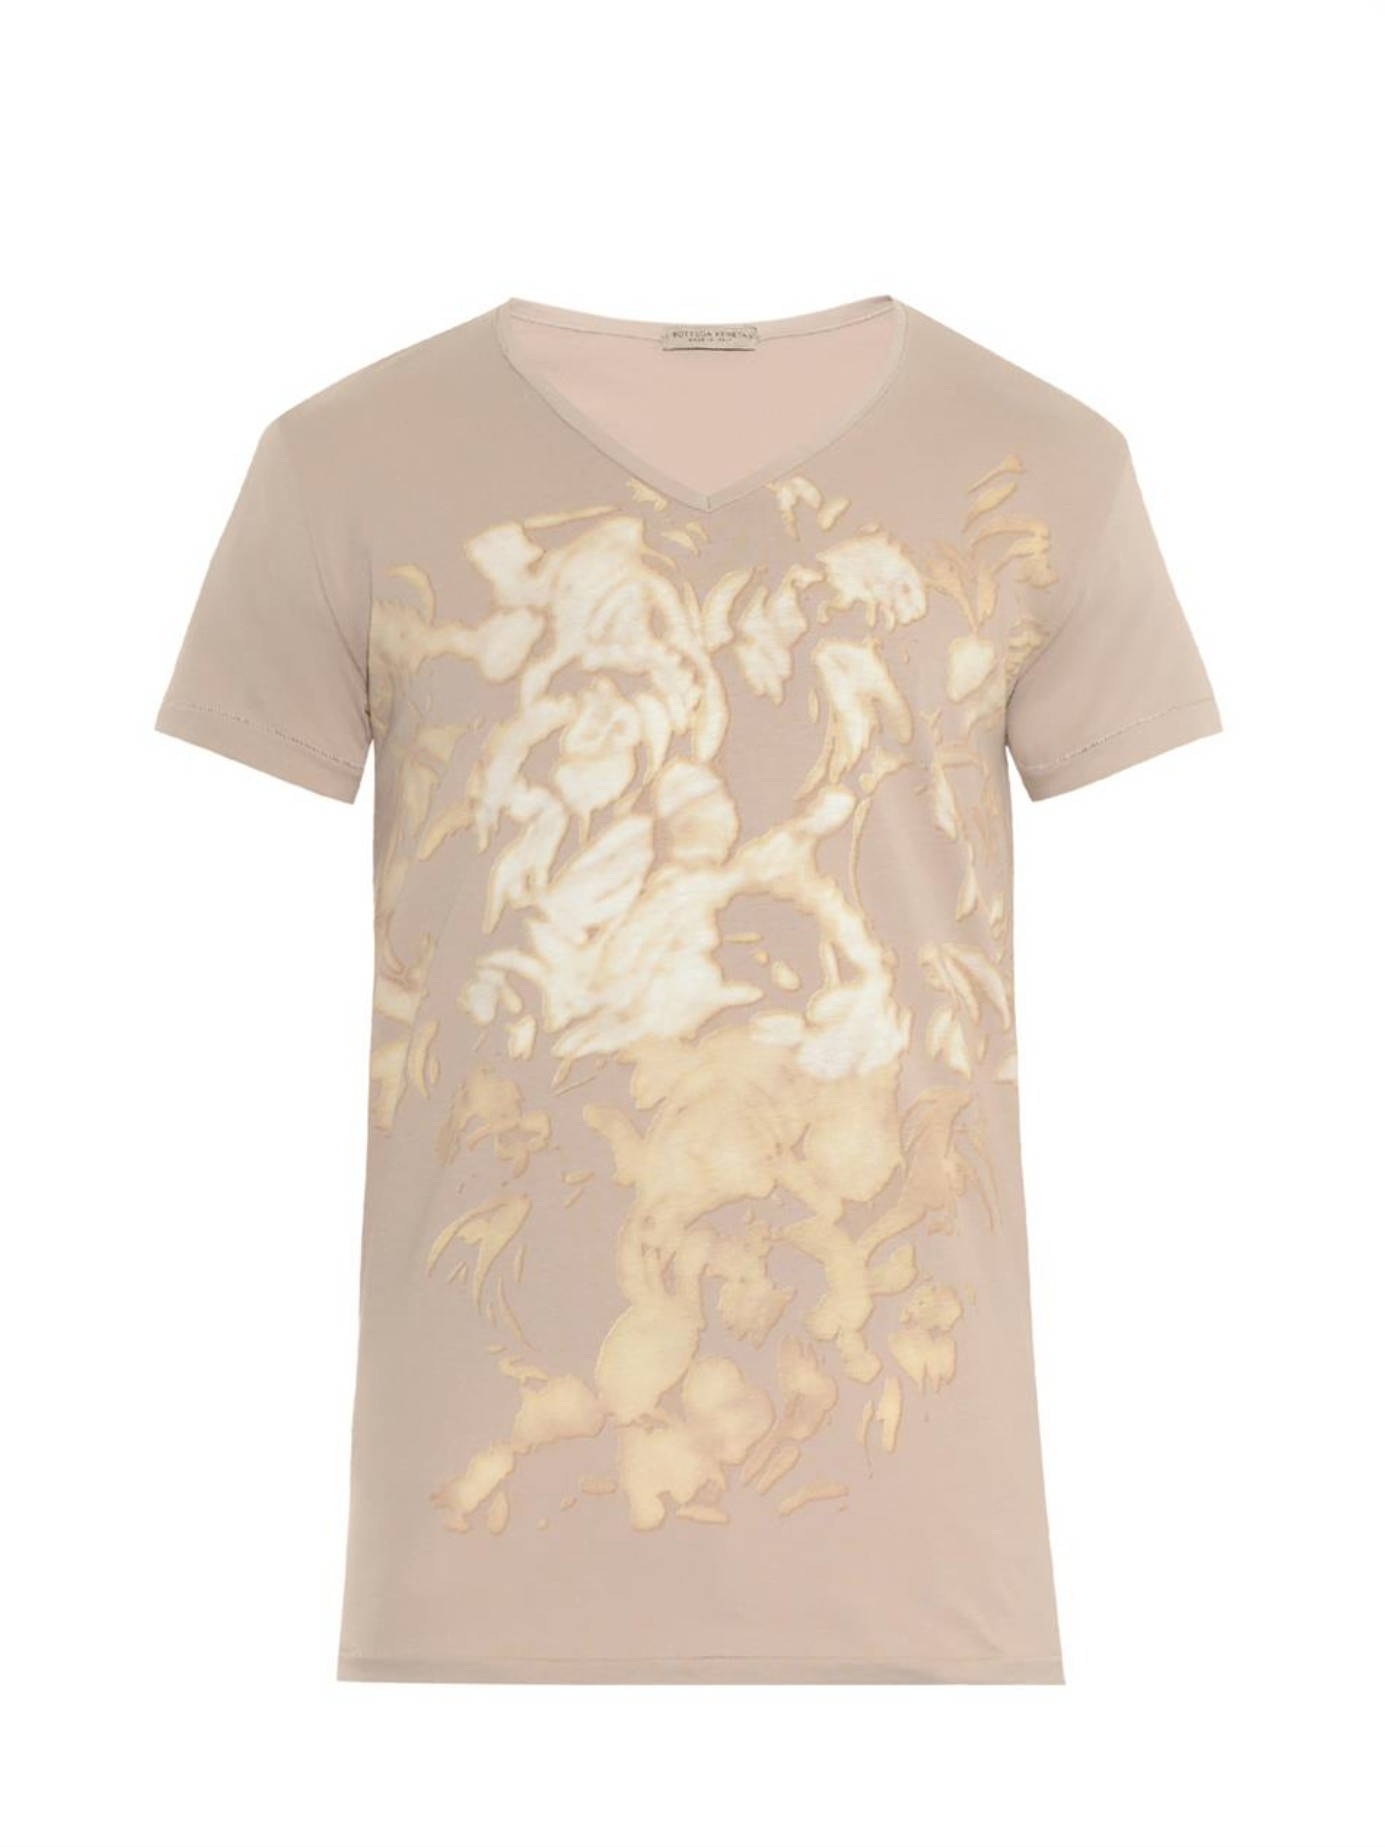 Bottega veneta bleach print cotton jersey t shirt in for Bottega veneta t shirt